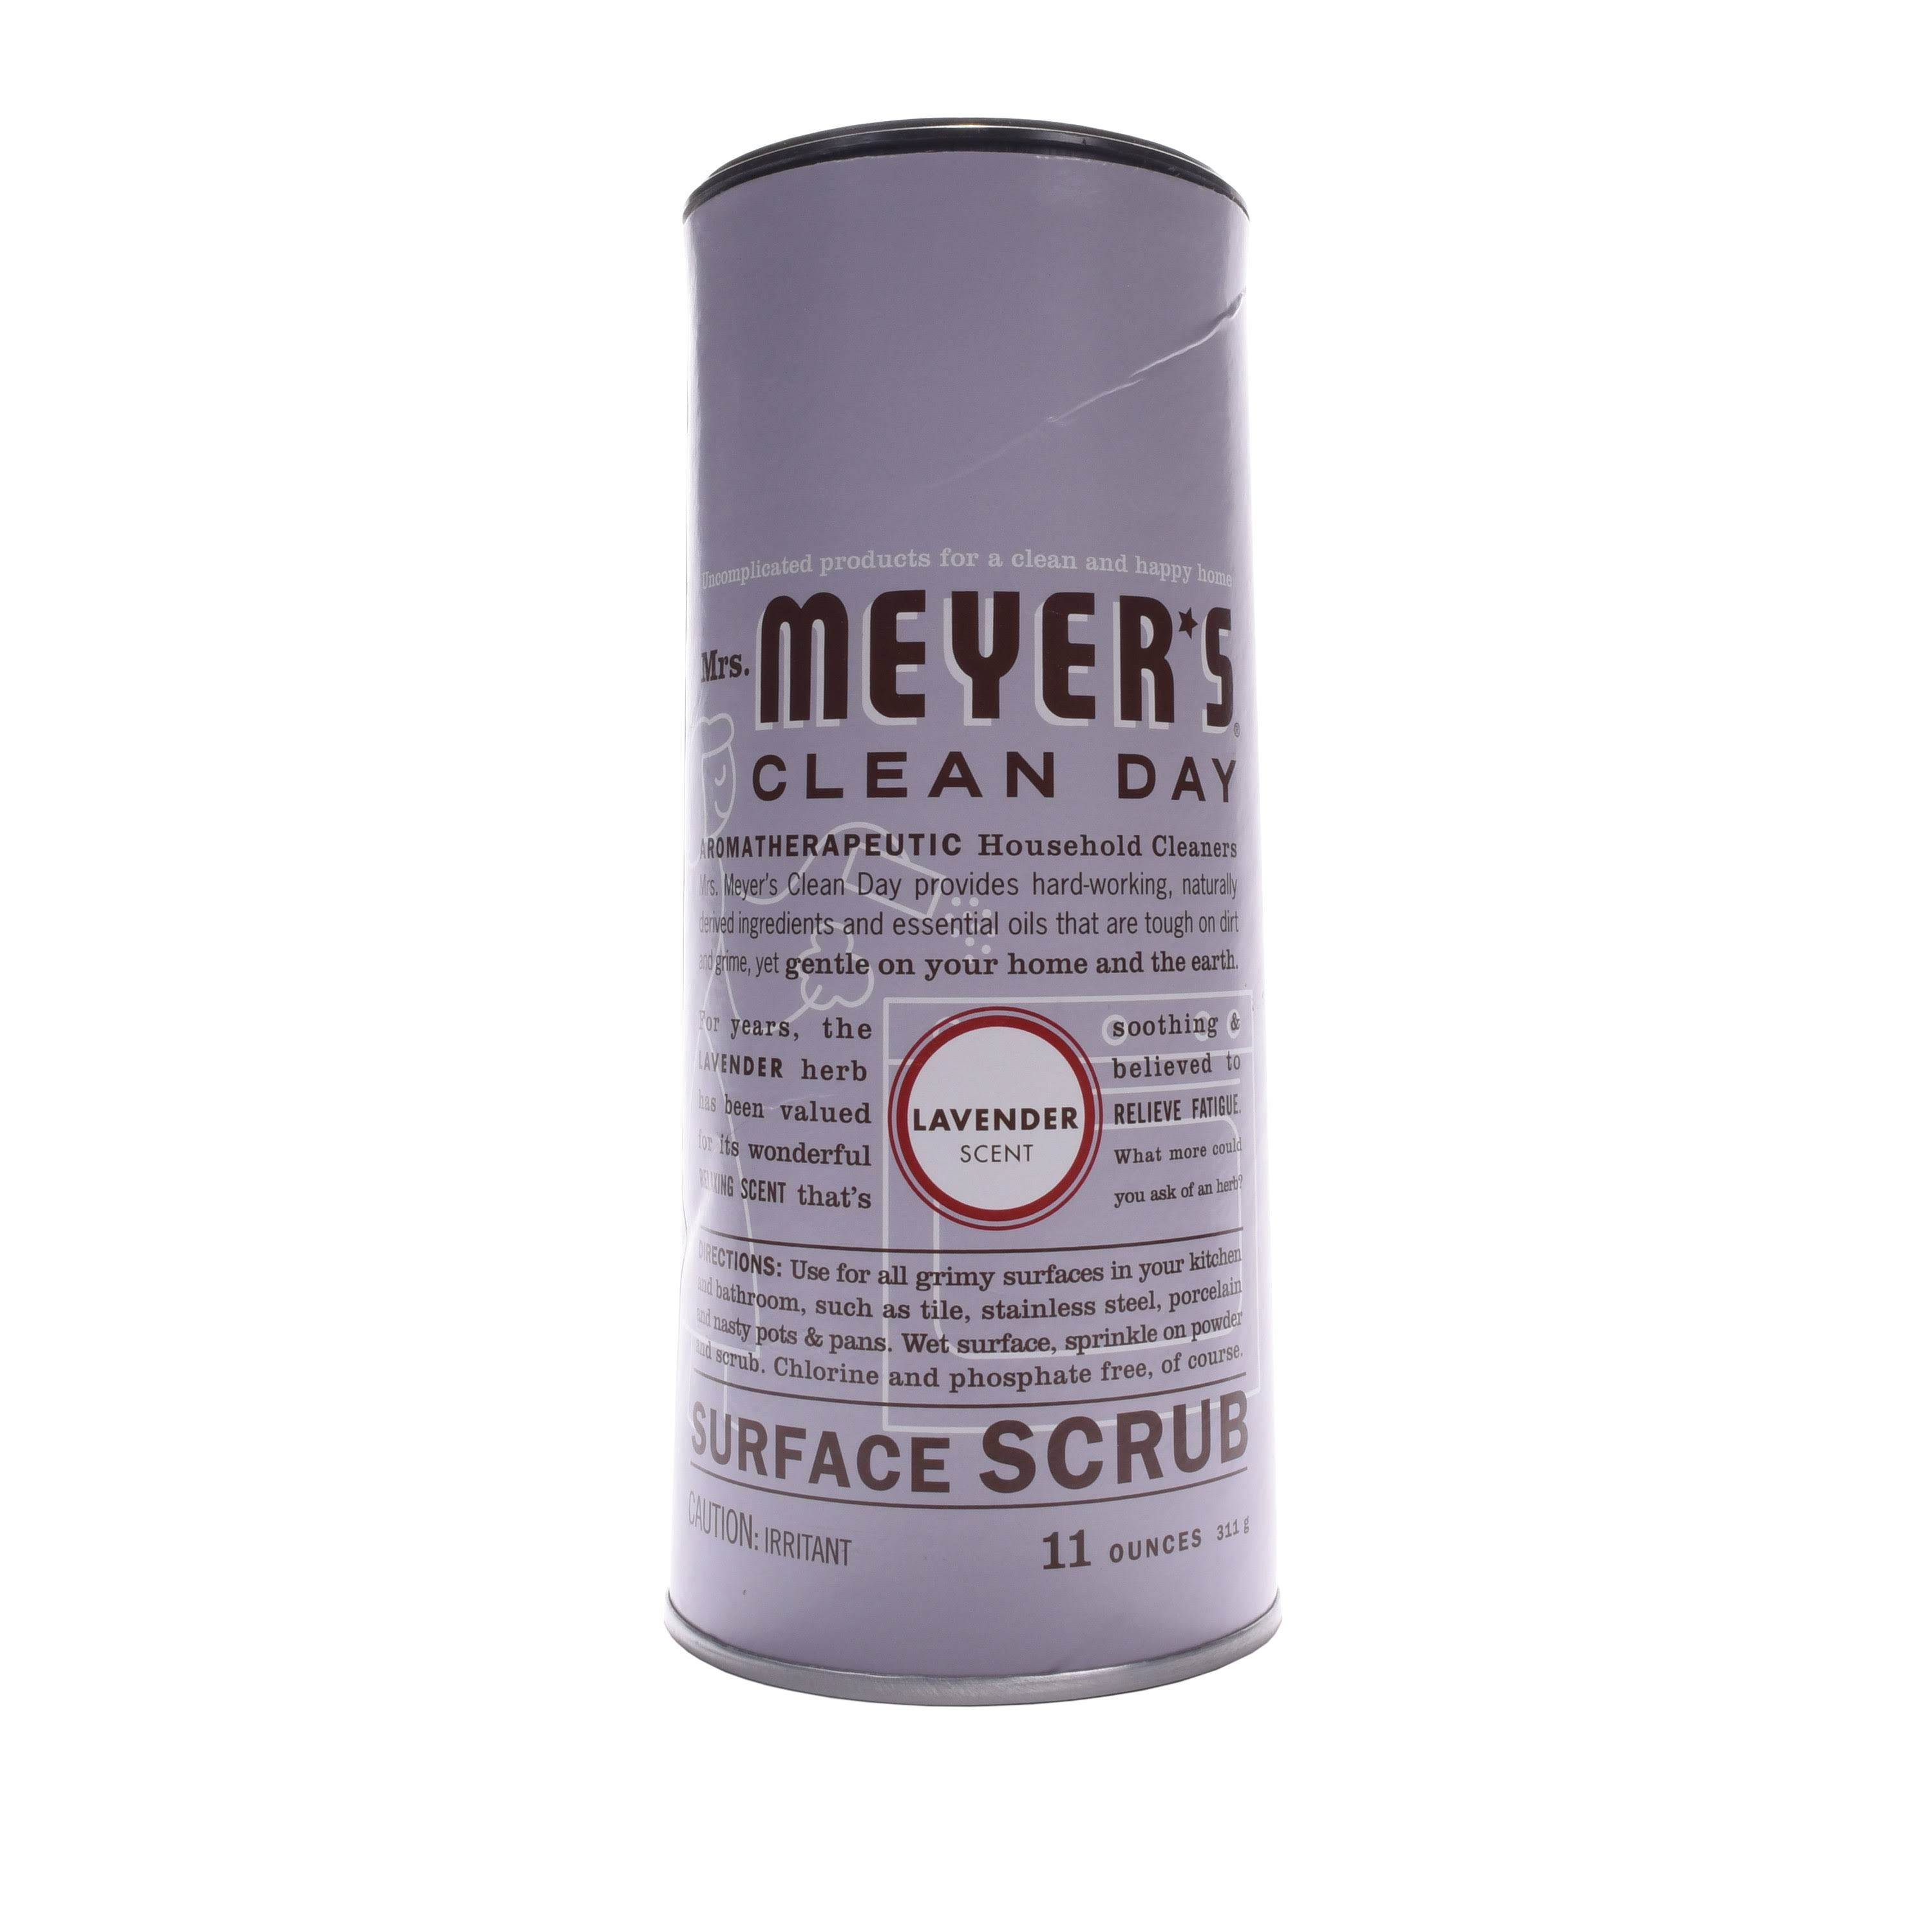 Mrs Meyers Clean Day Surface Scrub, Lavender Scent - 11 oz